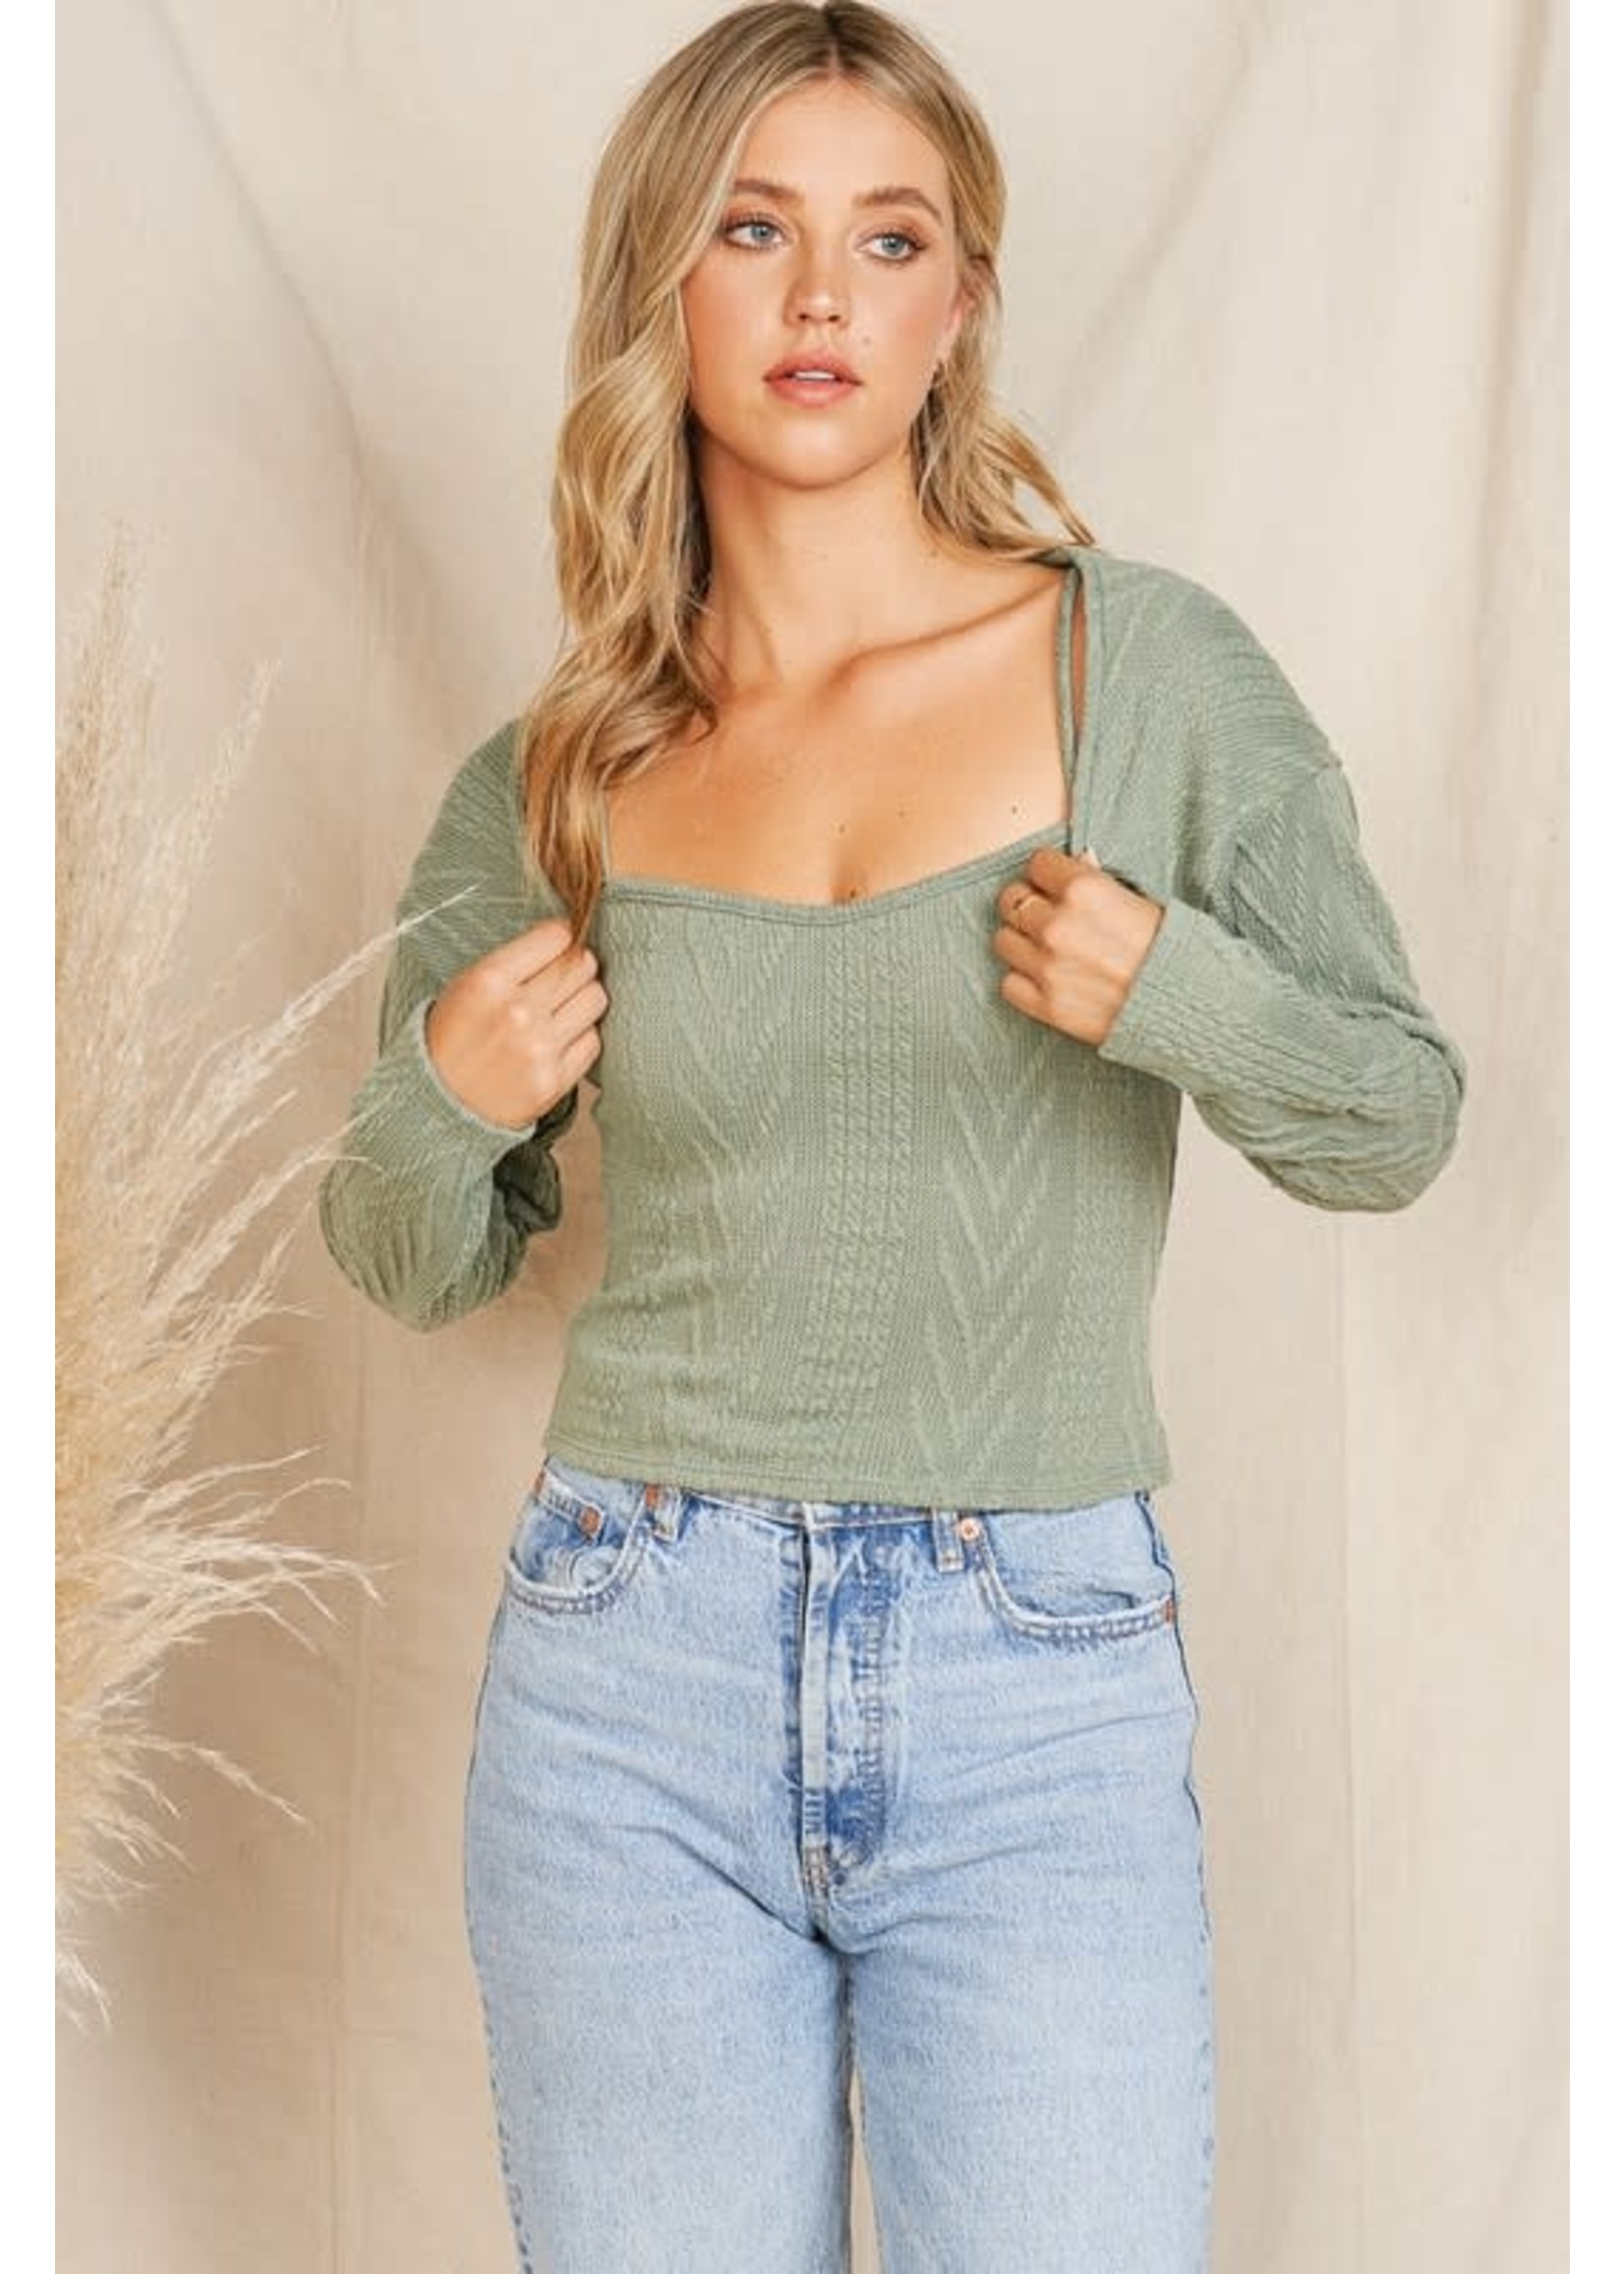 Charlotte Avery Cable Knit Tank Top & Shrug Sweater SET  - 11435